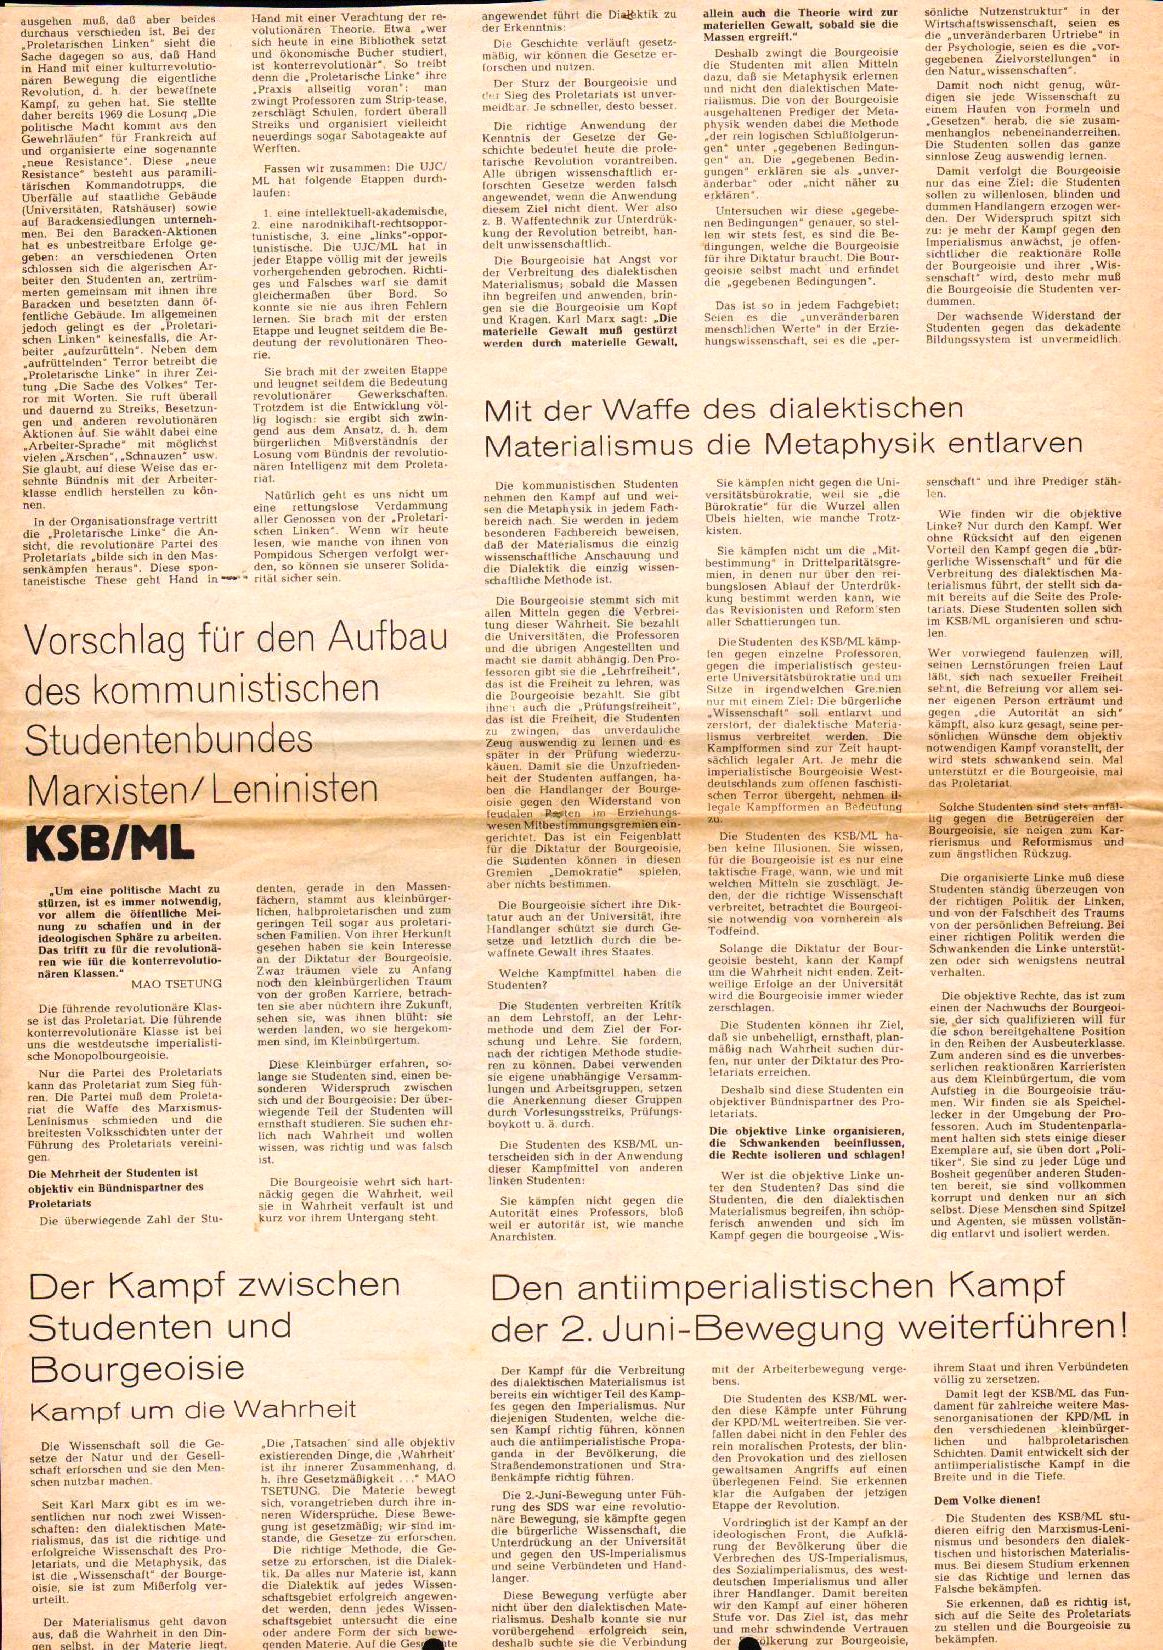 Roter Morgen, 4. Jg., August 1970, Nr. 7, Seite 6